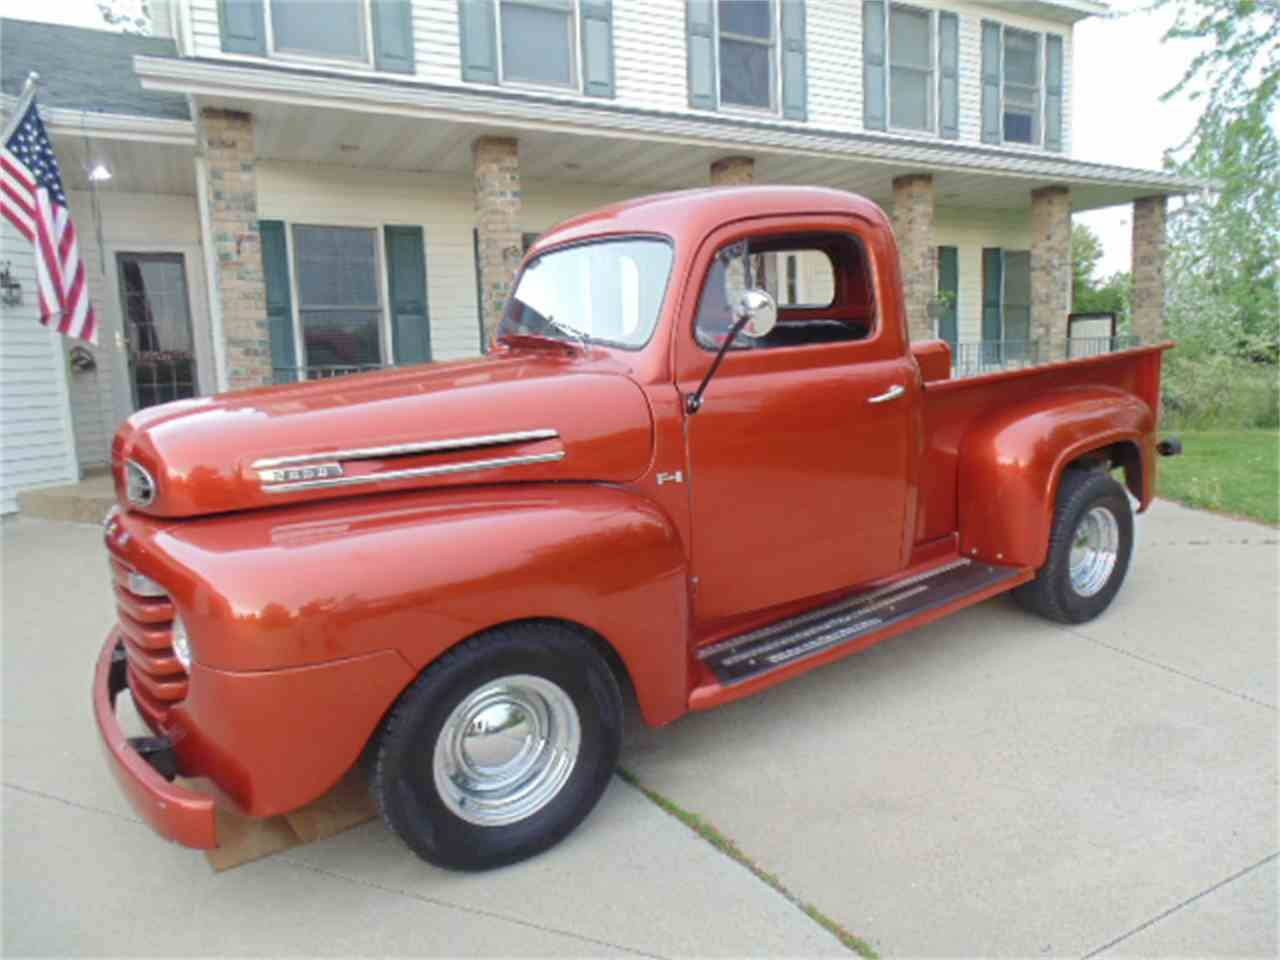 Ford Rochester Mn >> 1950 Ford F1 Pickup for Sale | ClassicCars.com | CC-984461